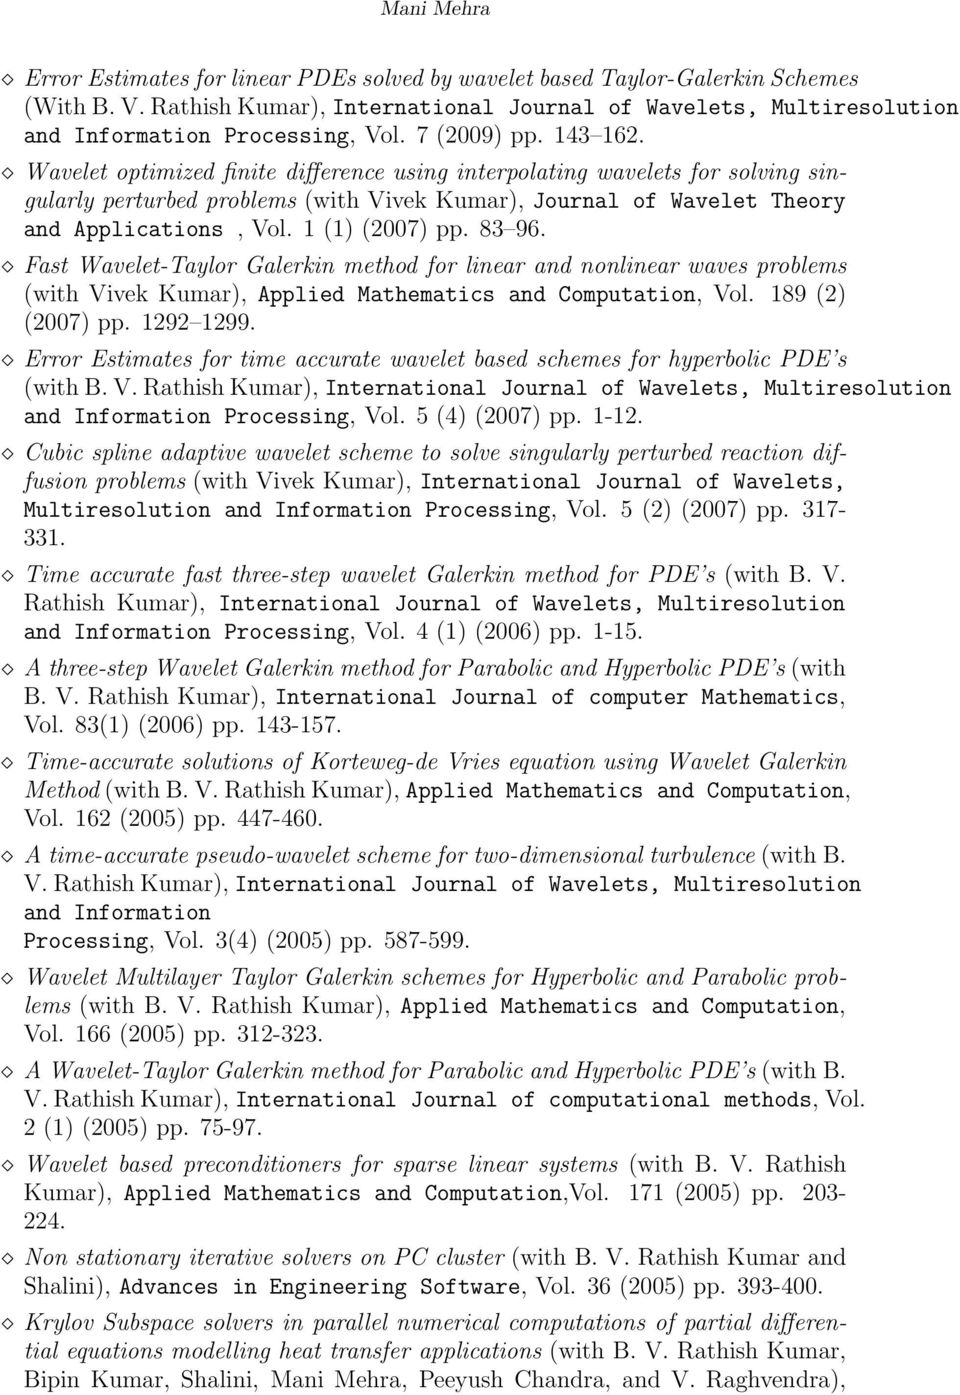 1 (1) (2007) pp. 83 96. Fast Wavelet-Taylor Galerkin method for linear and nonlinear waves problems (with Vivek Kumar), Applied Mathematics and Computation, Vol. 189 (2) (2007) pp. 1292 1299.